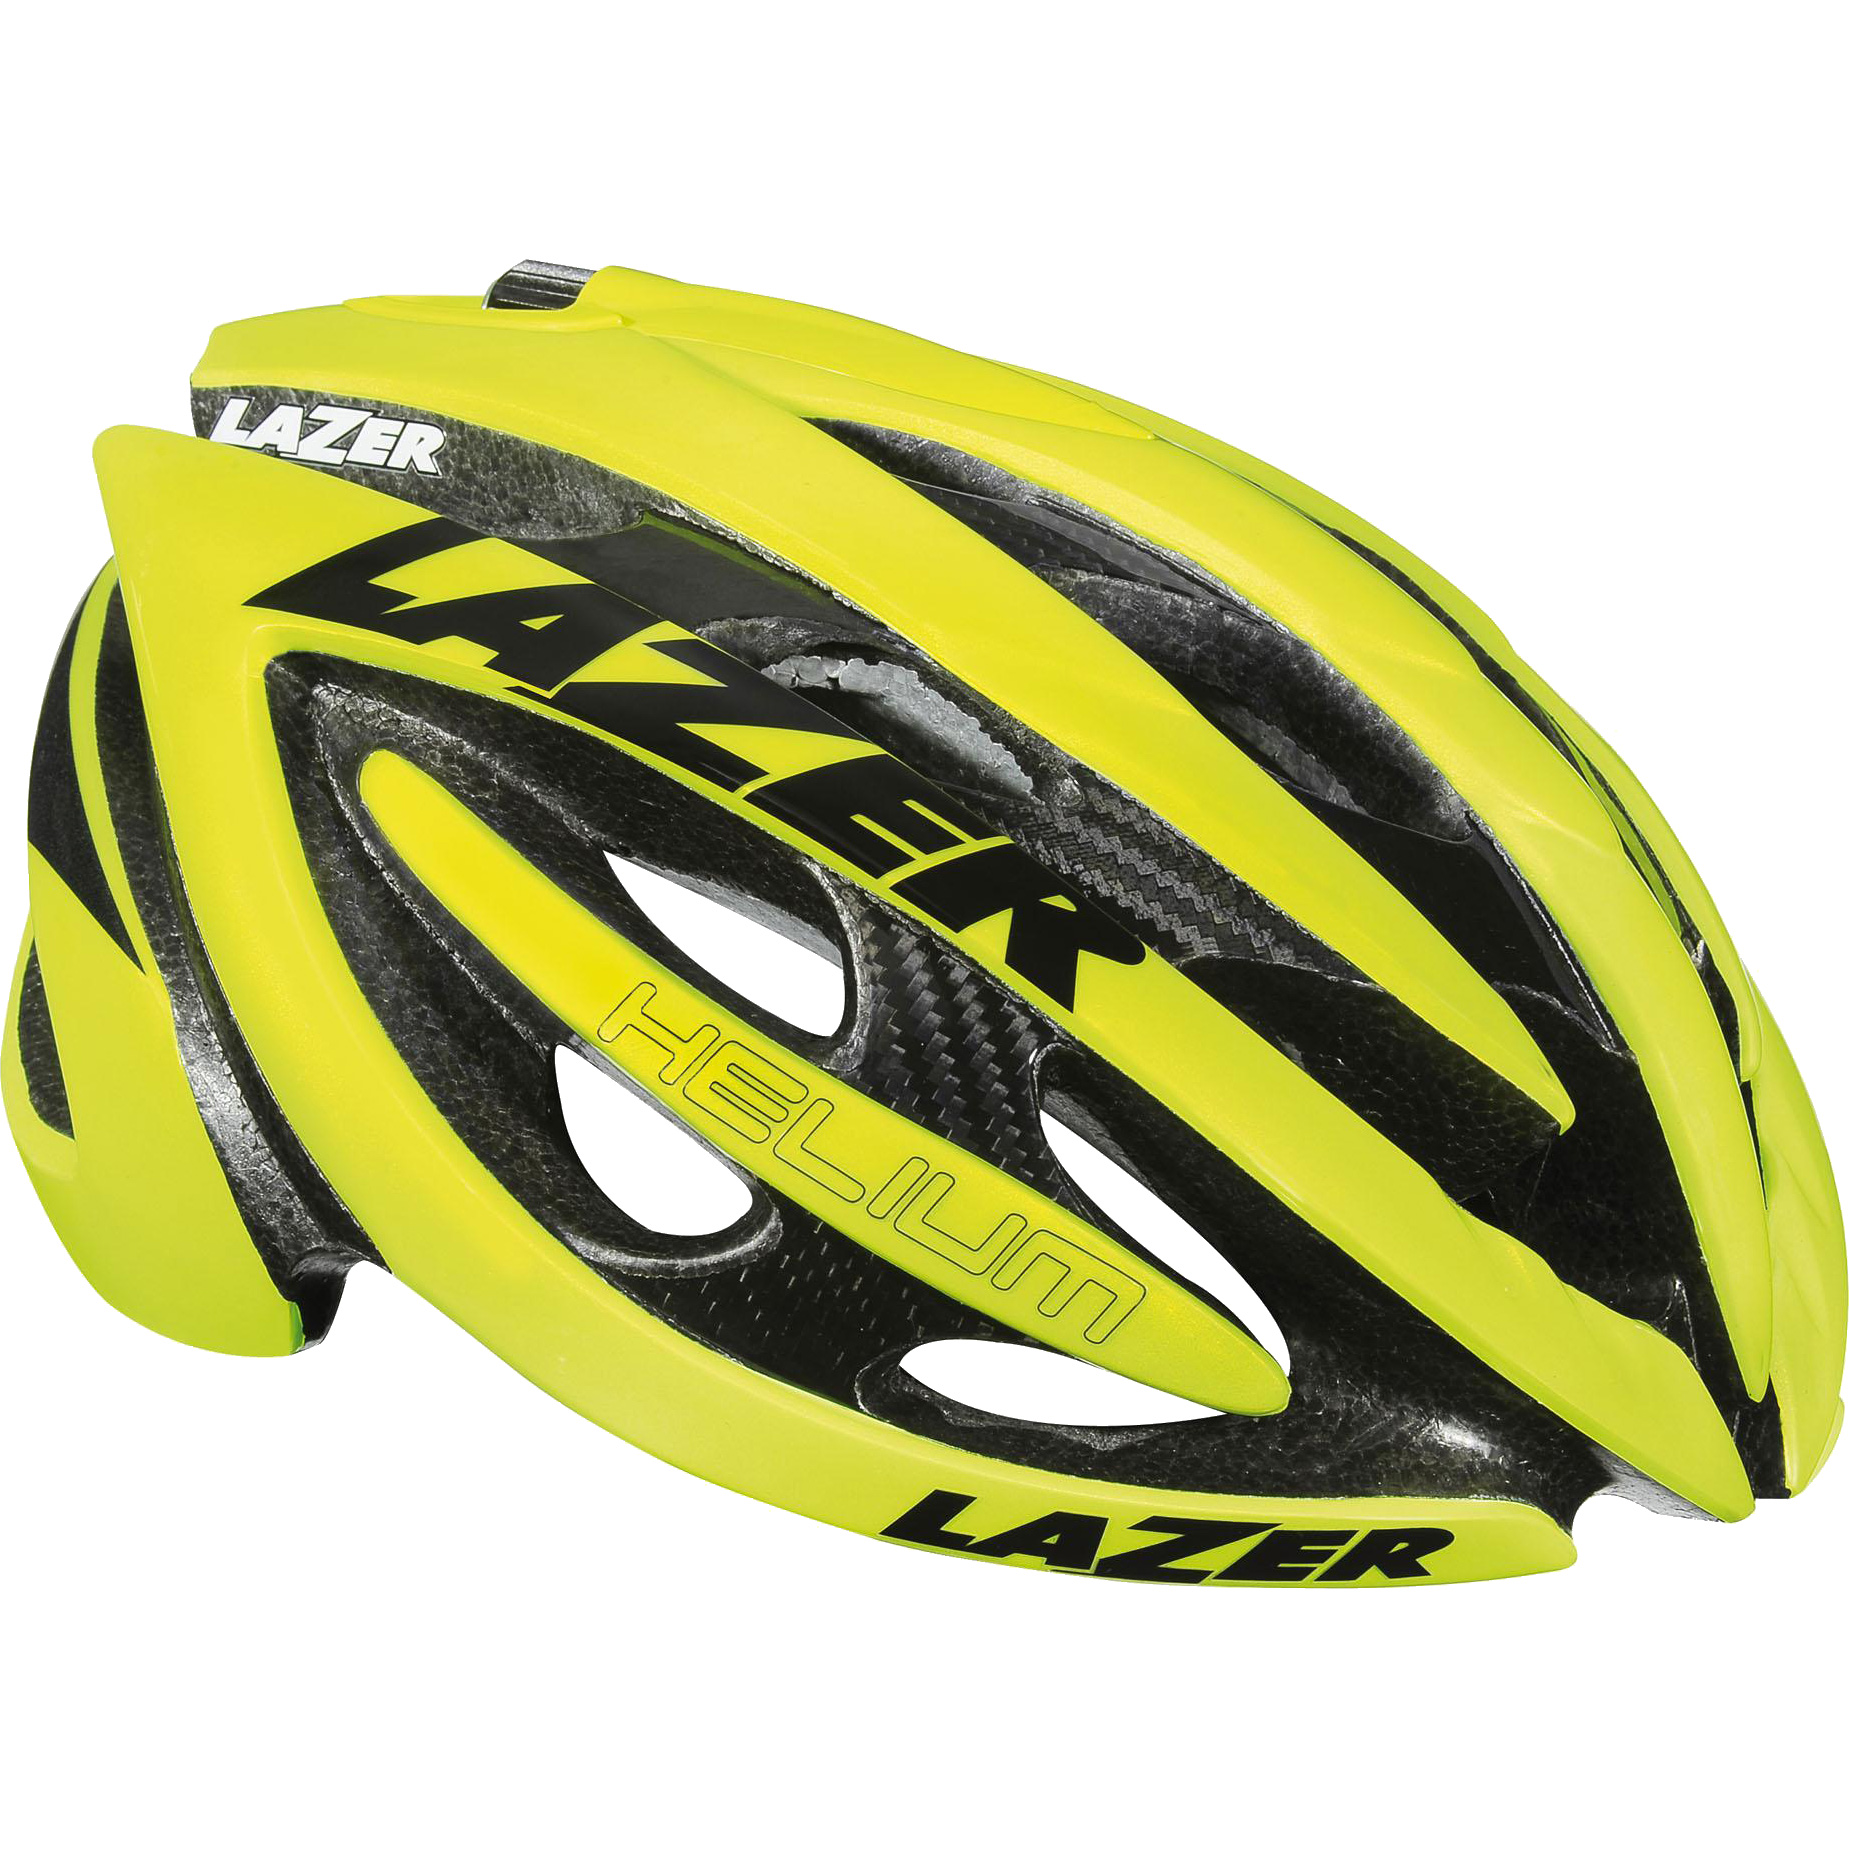 Lazer Helium Road Helmet - High Vis 2013